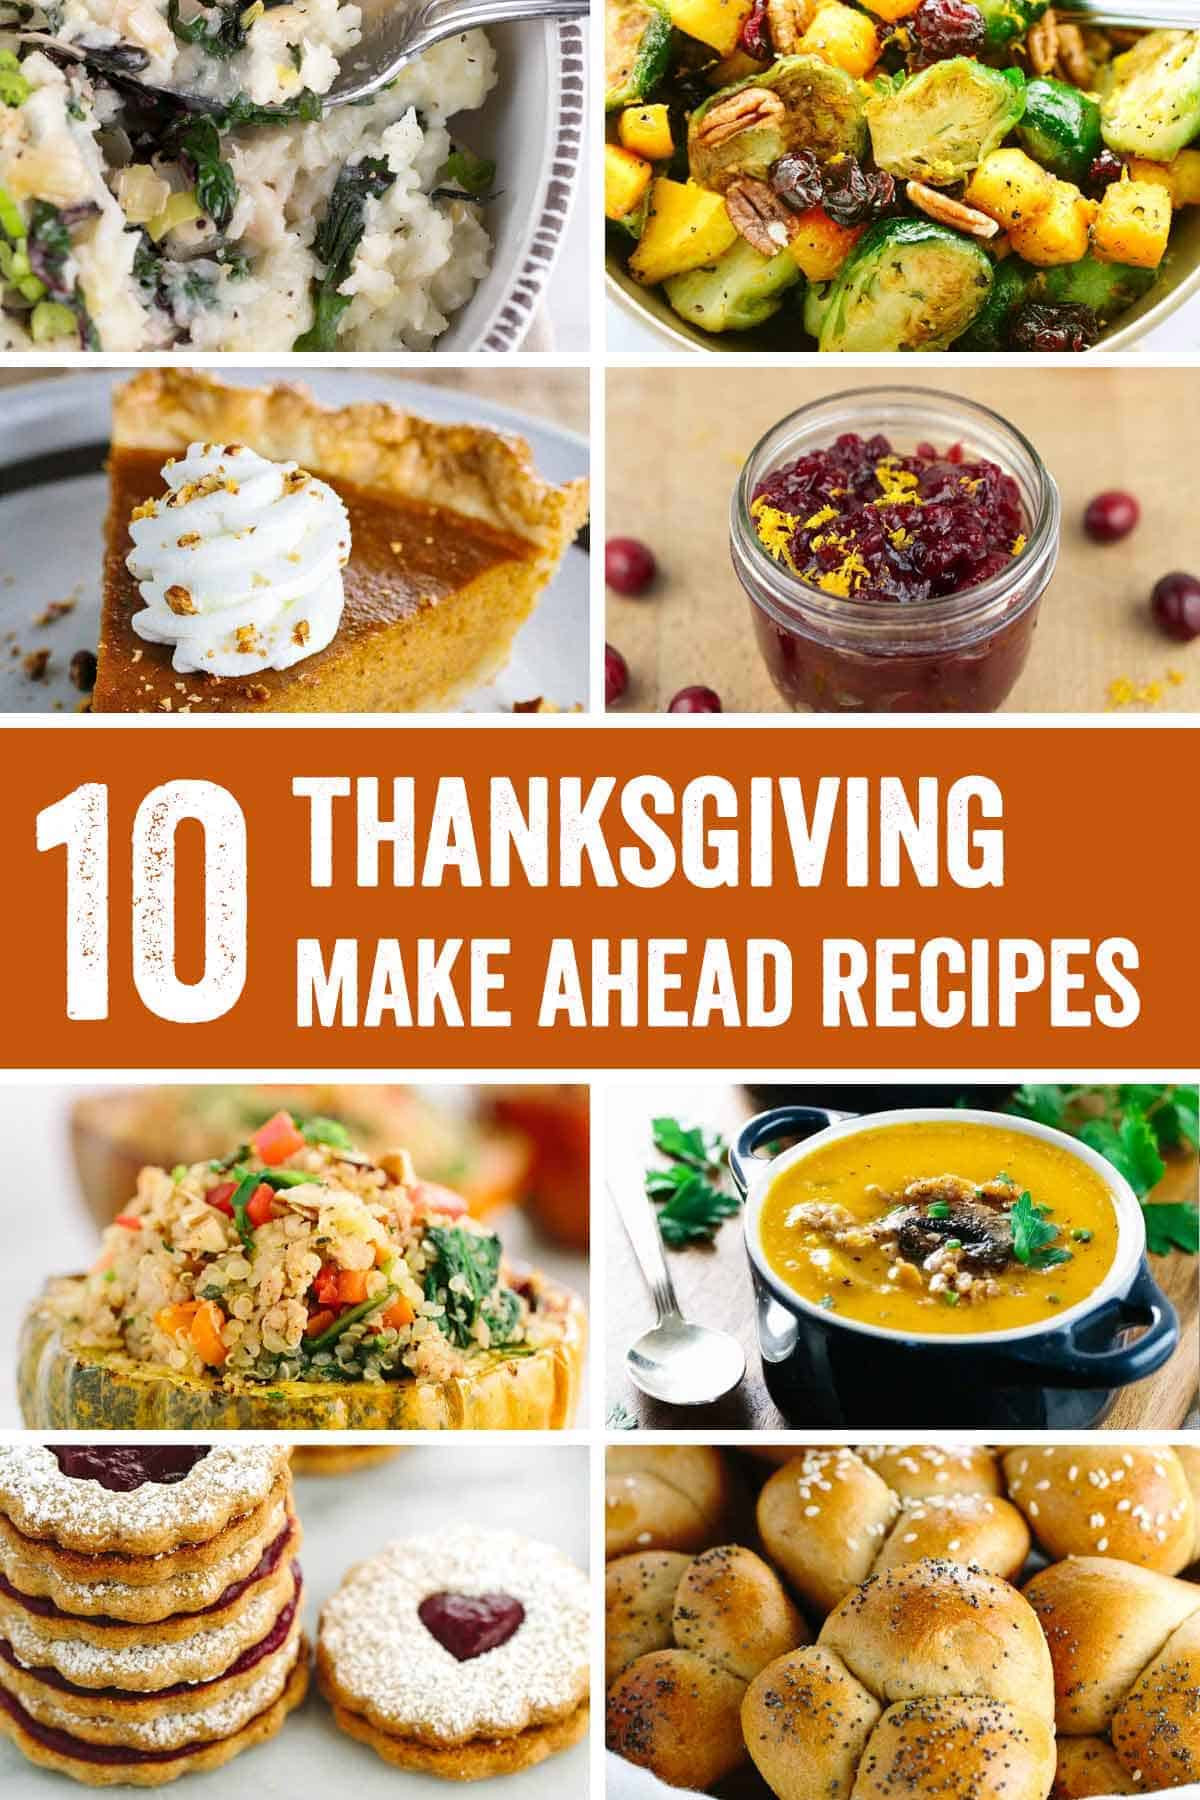 Make Ahead Thanksgiving Desserts  Roundup 10 Thanksgiving Make Ahead Recipes